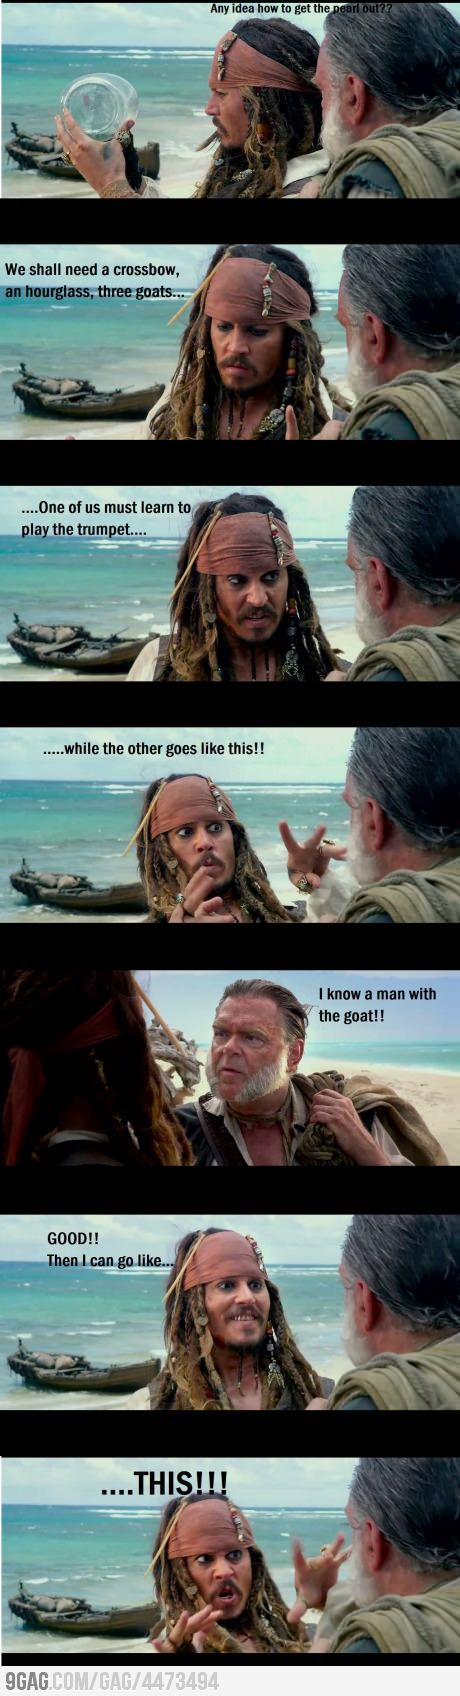 Just Jack Sparrow.... @florencia Silveira this reminded me of you when you get hyper or you do a trick or try to make me laugh, you always do this to my face! Hahaha